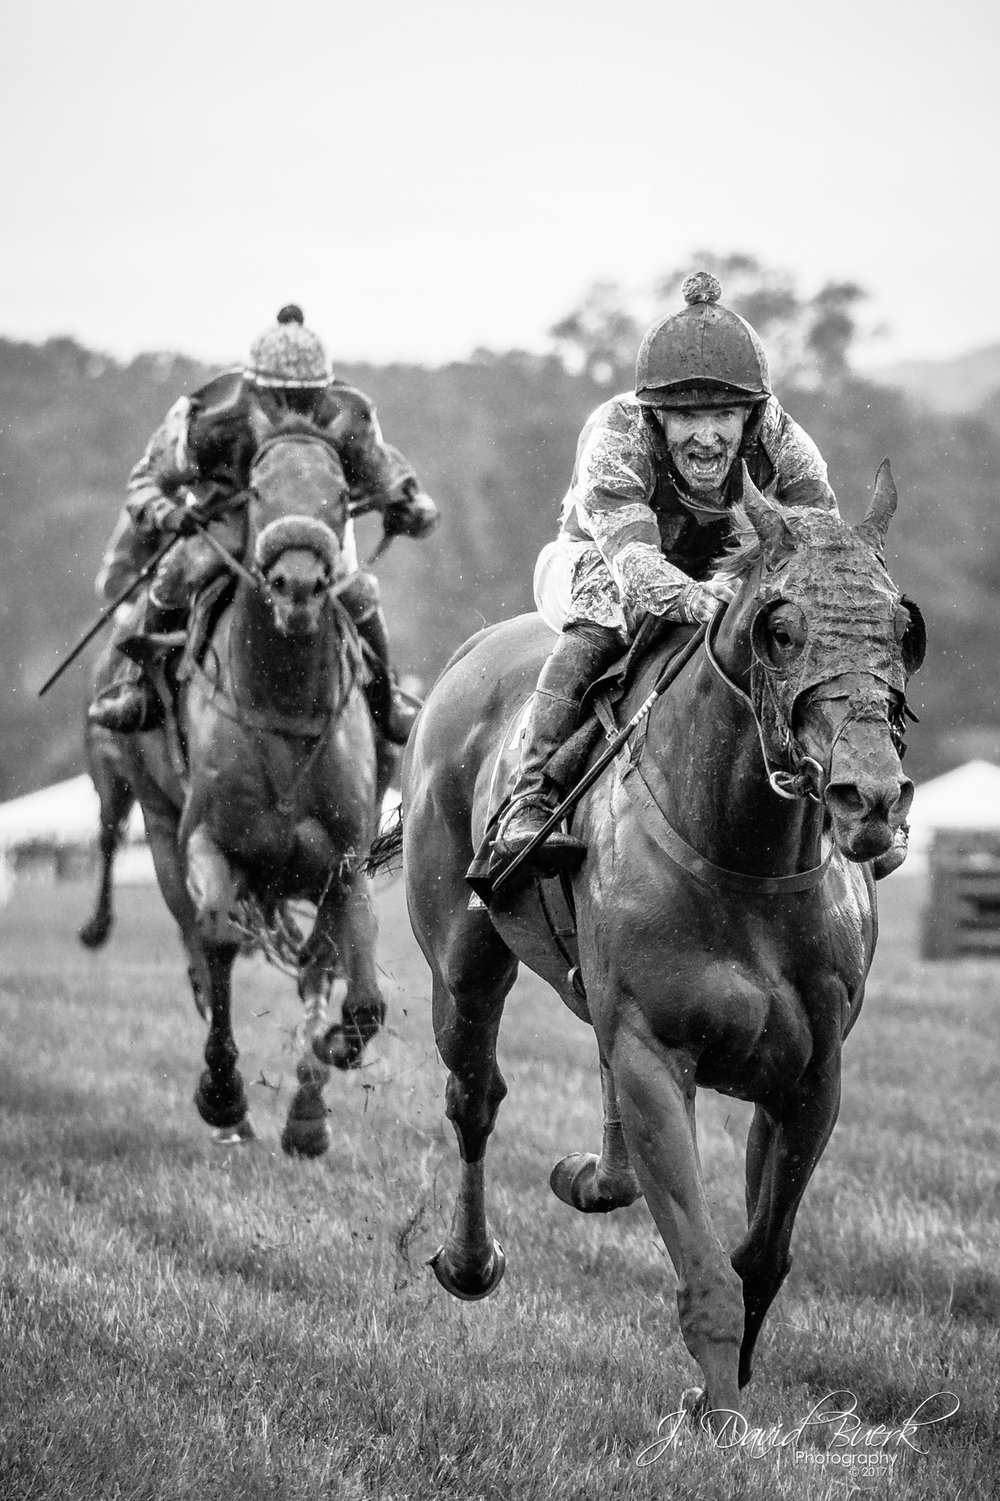 Jockies on the main straightaway approach the finish line at the Virginia Gold Cup.  2017 hosted one of the rainiest, muddiest Gold Cups of recent history.